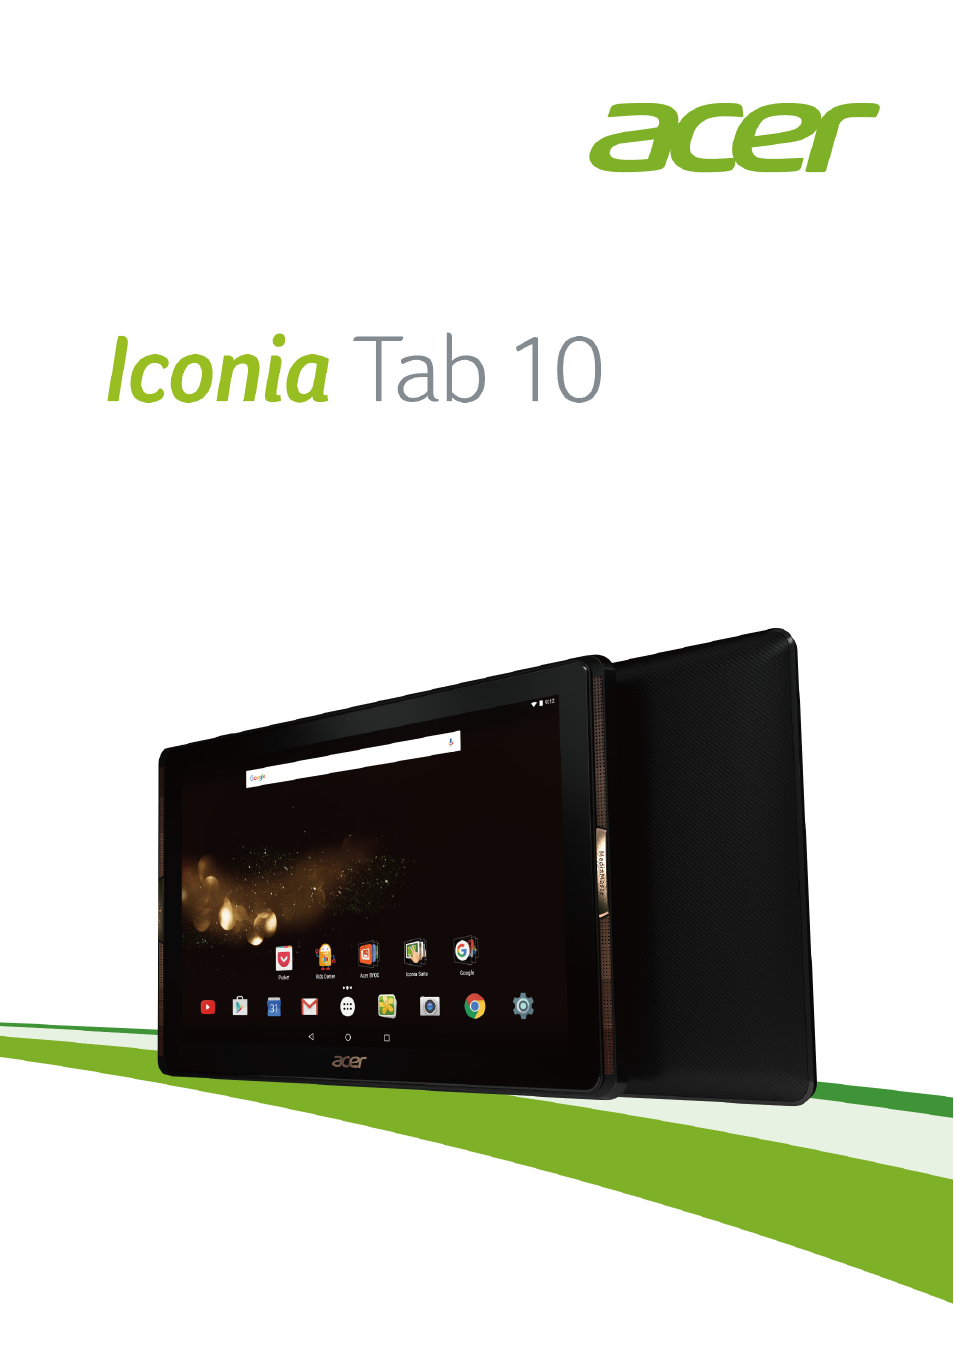 acer iconia tab 10 a3 a40 user manual 57 pages also for iconia rh manualsdir com acer iconia user manual pdf acer iconia one 7 instruction manual